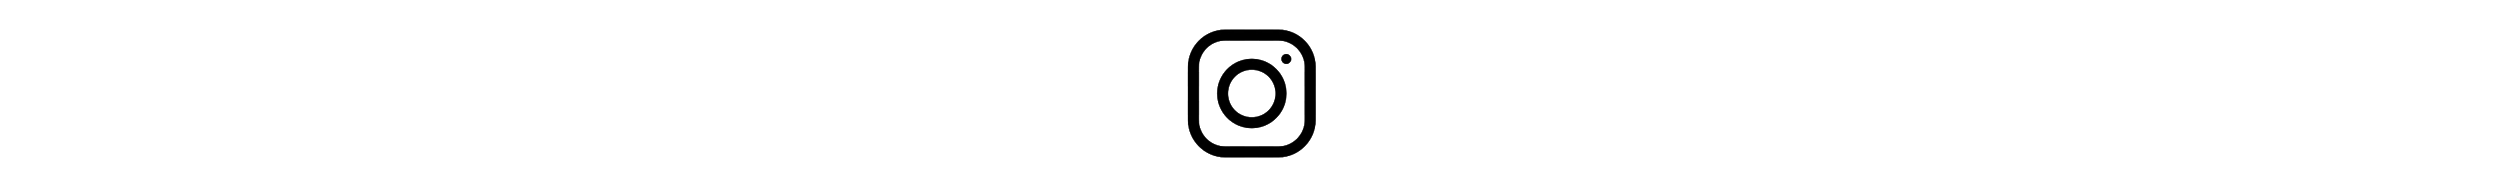 kisspng-computer-icons-logo-photography-instagram-icon-instagram-5b4c0f1e2ab983.830384891531711262175.png